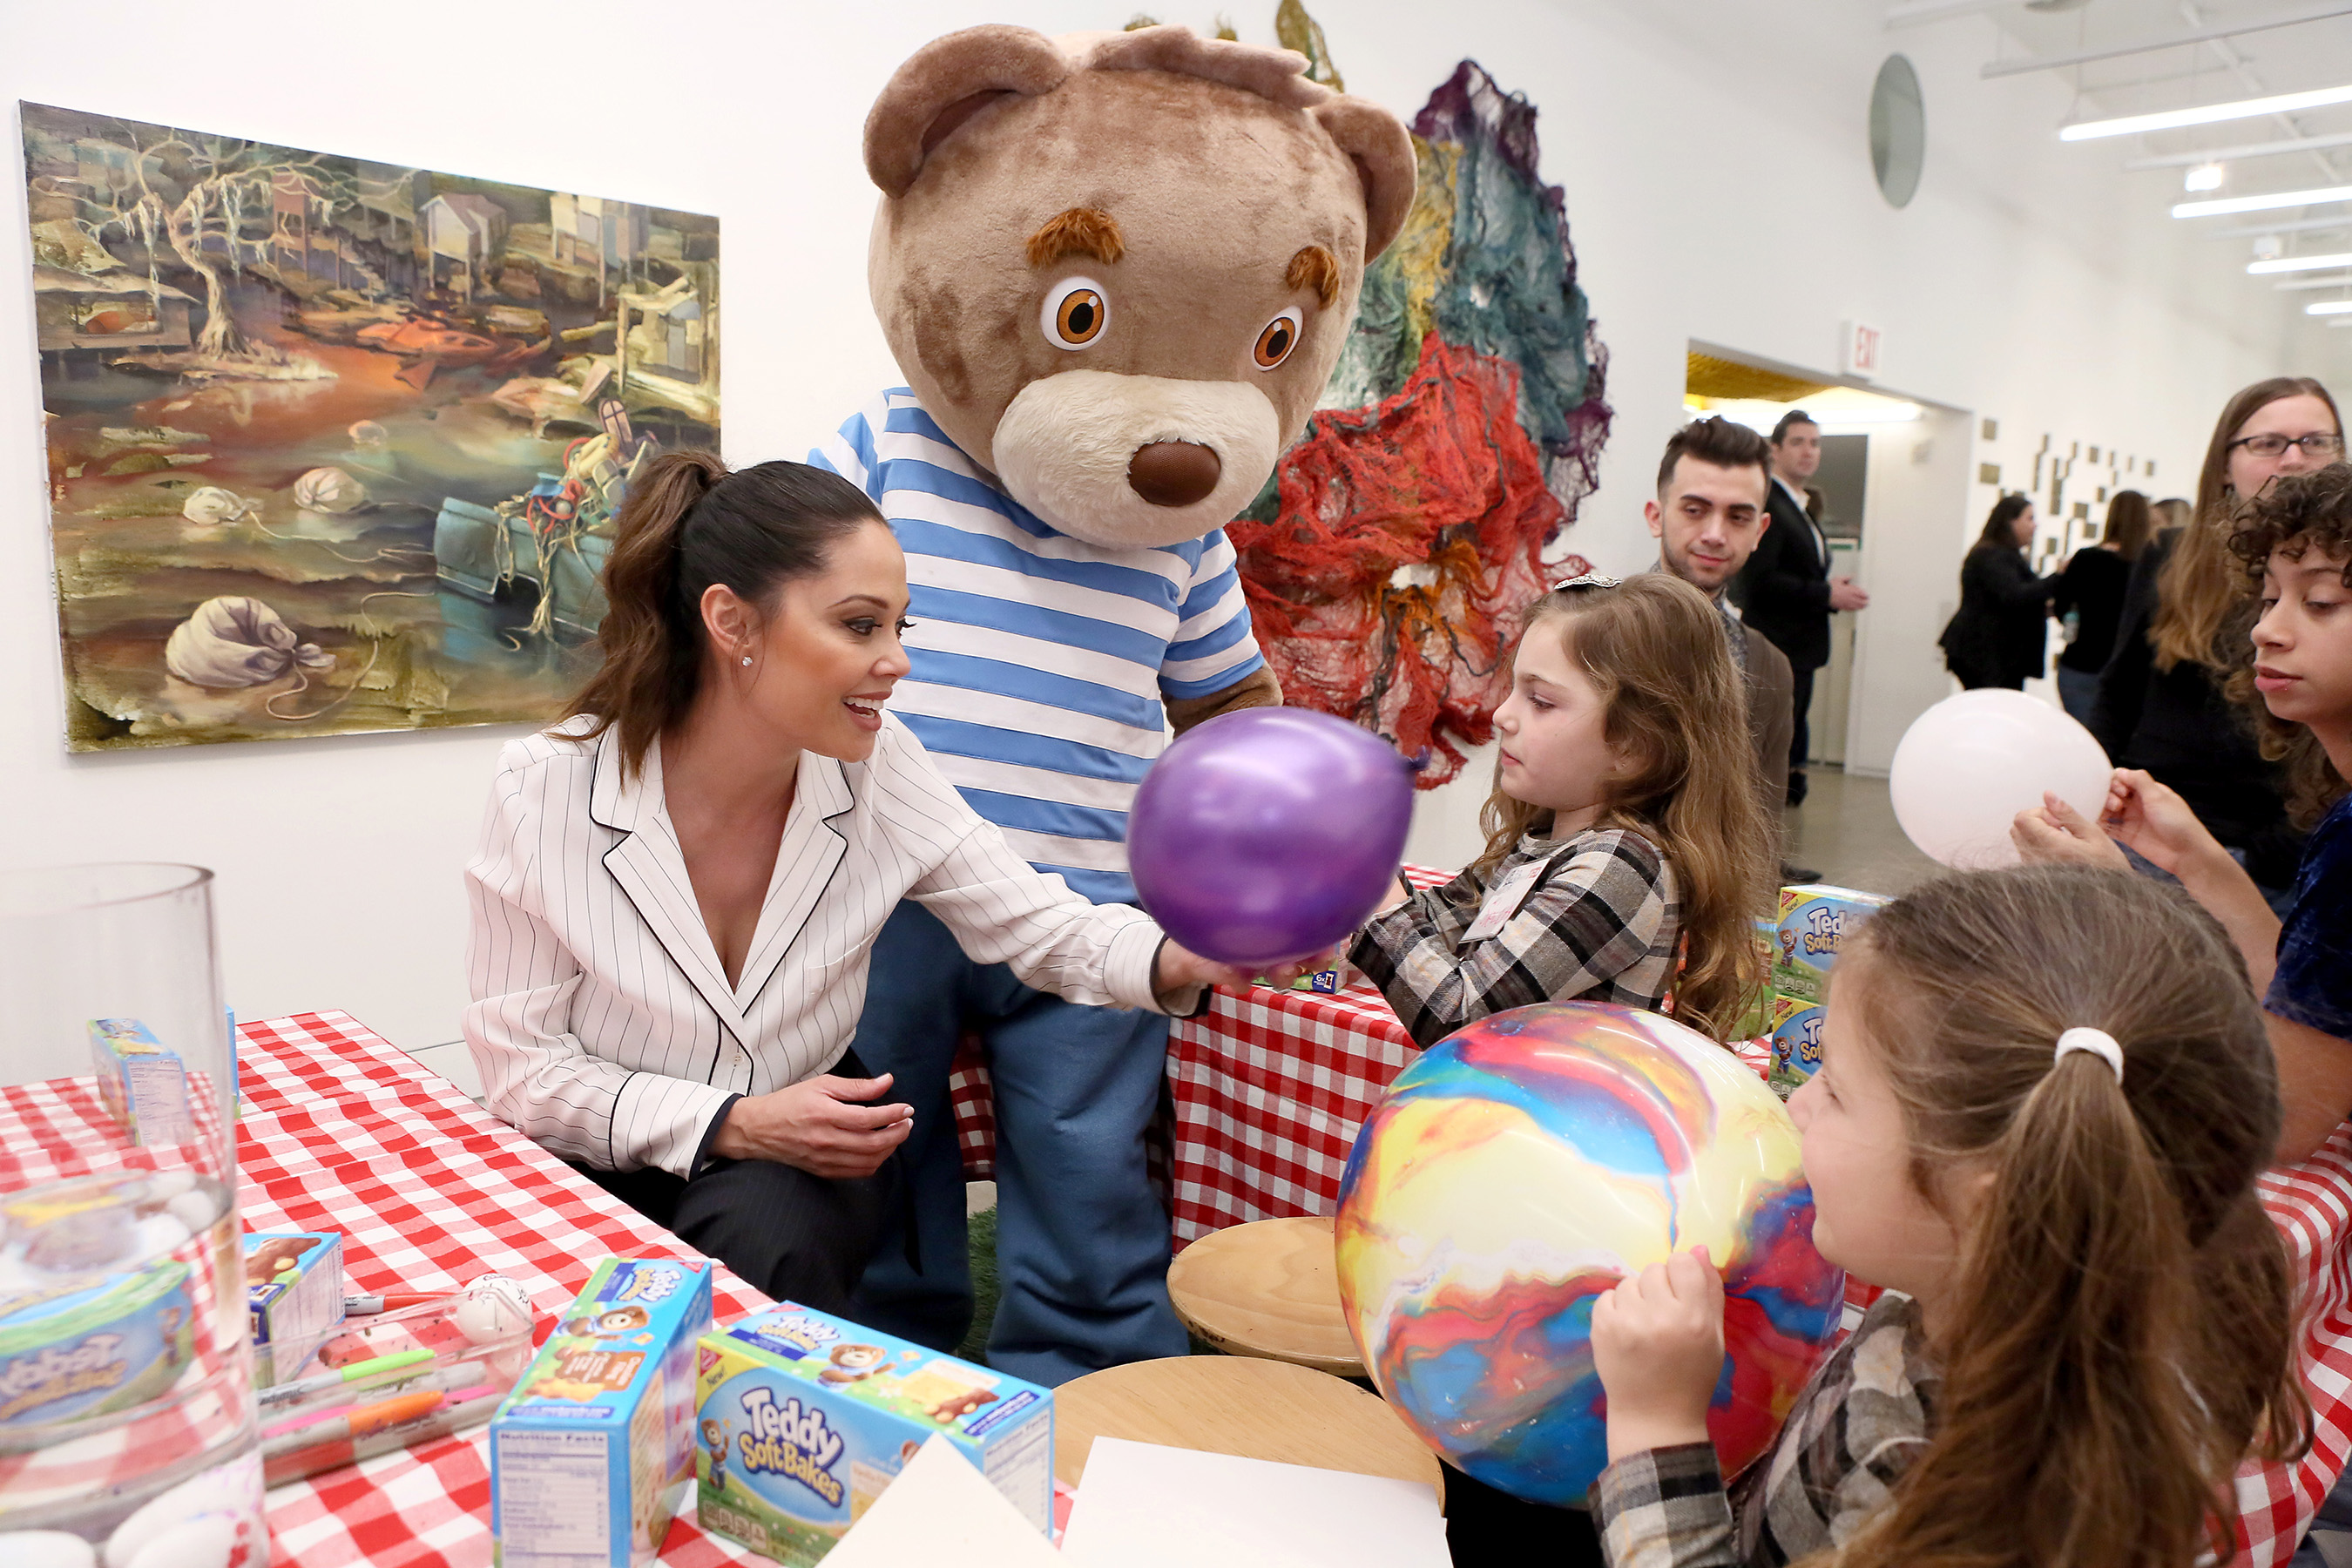 Vanessa Lachey, left, mom of three, had fun celebrating the launch of TEDDY Soft Bakes while participating in the brand's discovery activities at the Children's Museum of the Arts on Wednesday, Feb. 15, 2017, in New York City. (Stuart Ramson/AP Images for Mondelez International)